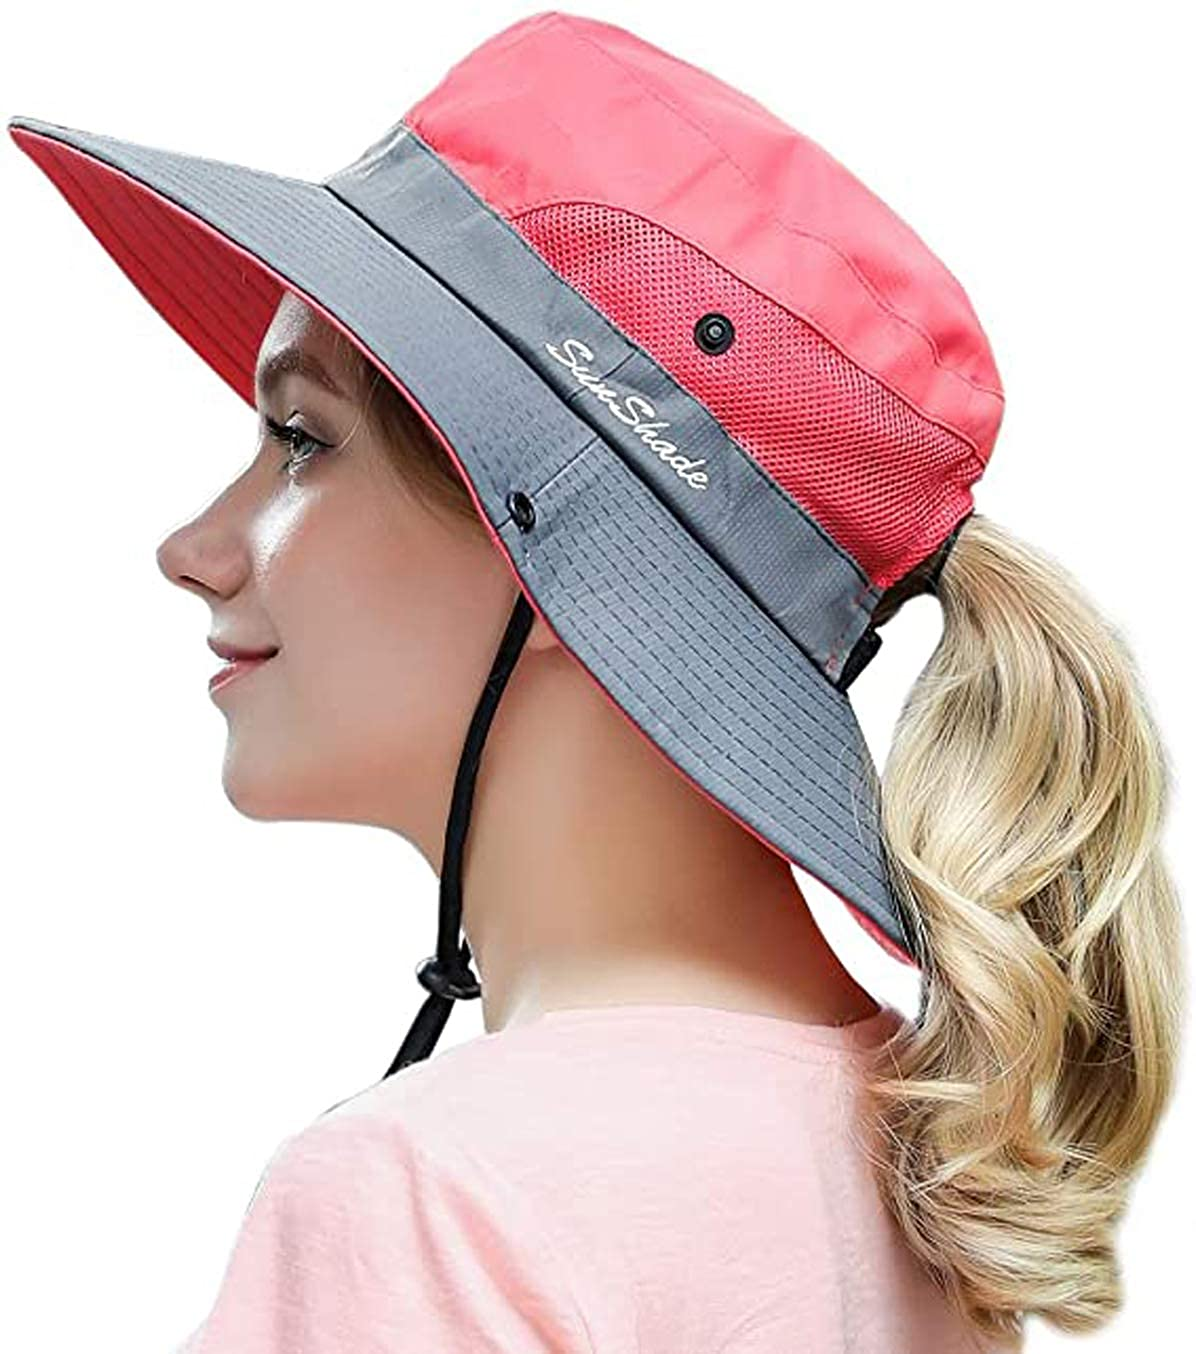 MonicaSun Women's Ponytail hat, Sun hat, Summer mesh Wide Eaves Sunscreen and UV Protection hat